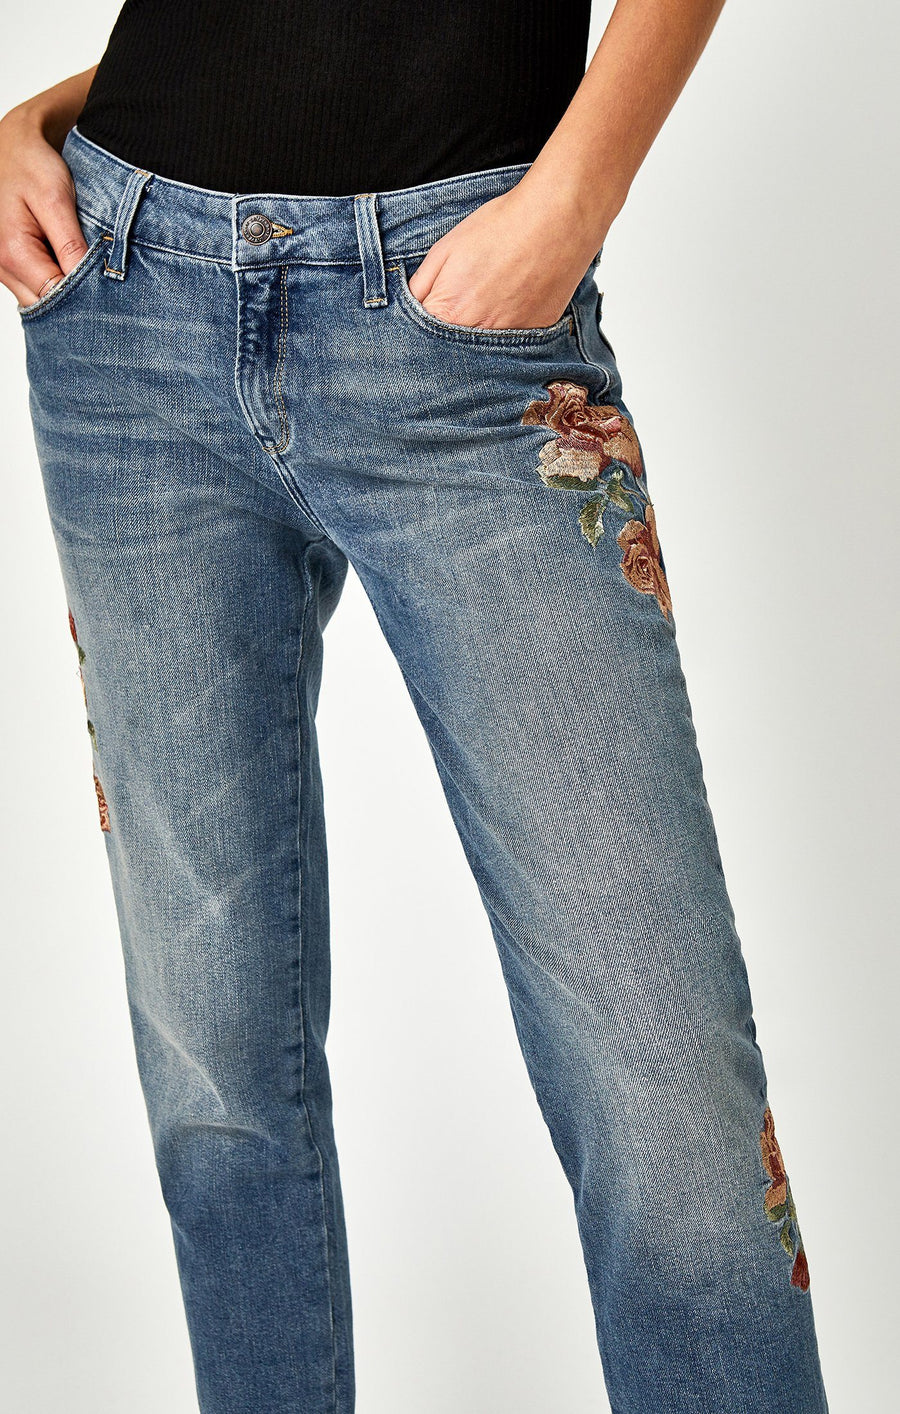 ADA BOYFRIEND IN MID ROSE EMBROIDERY - Mavi Jeans